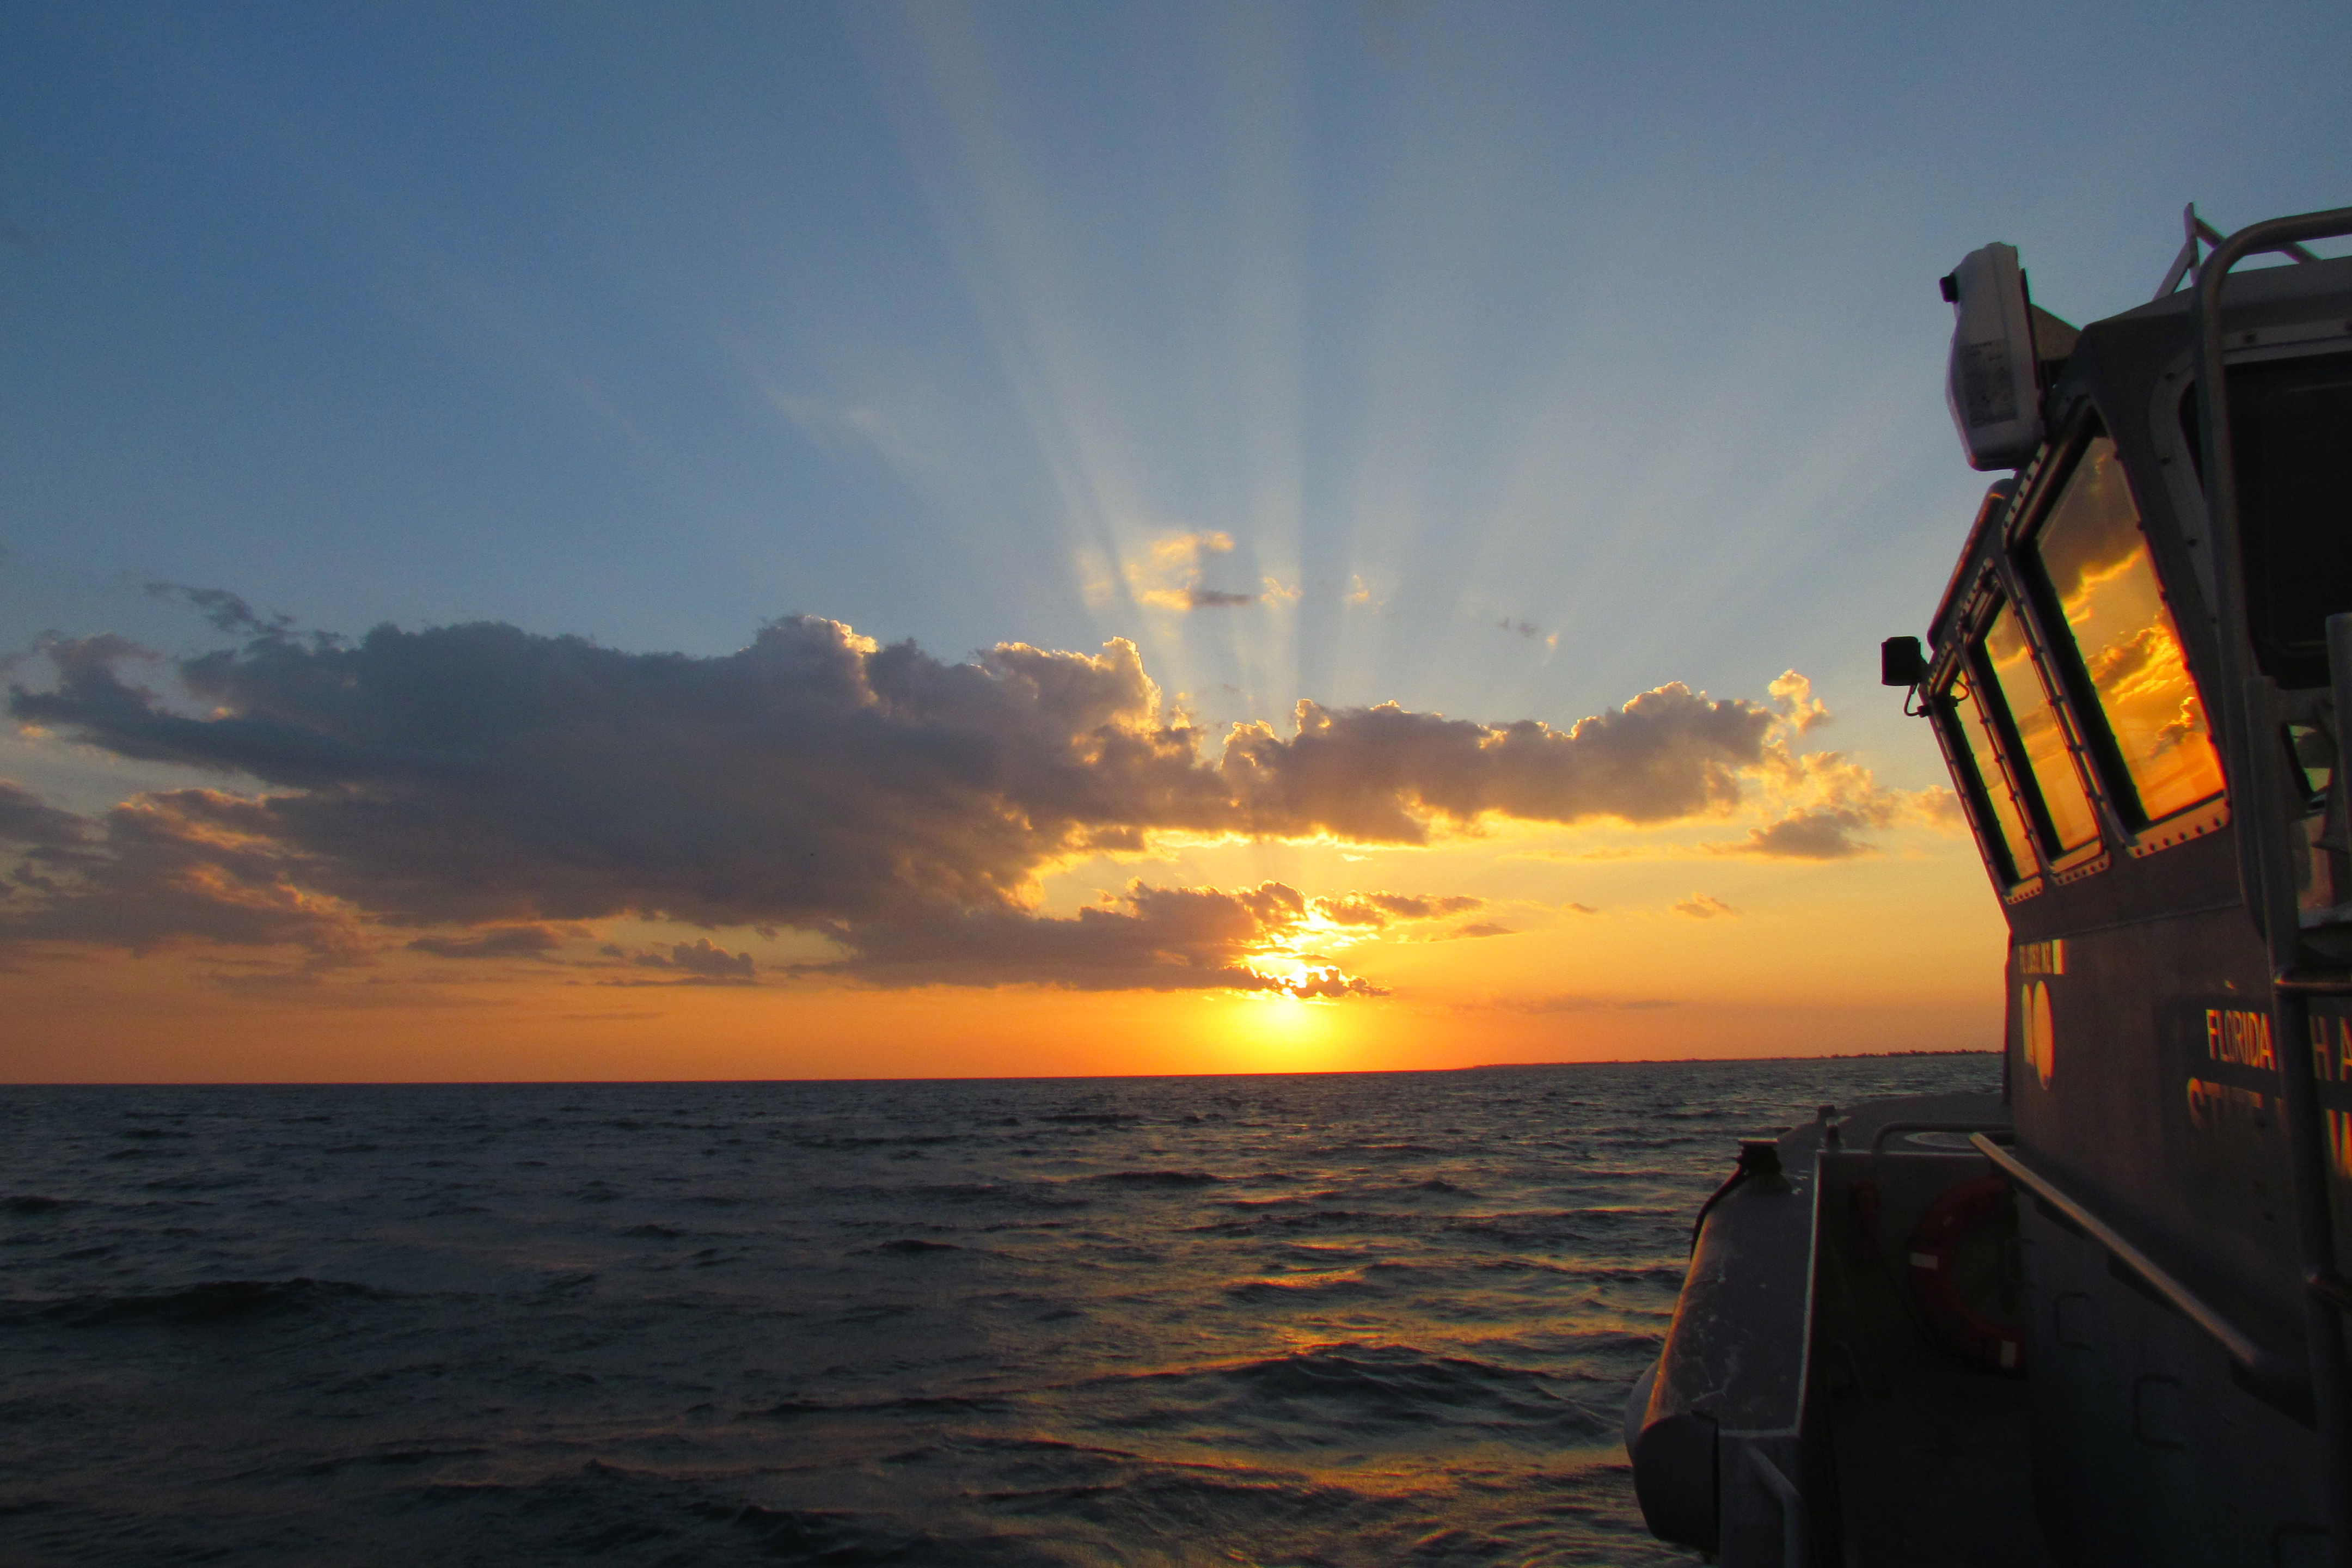 View of the sun setting over the Gulf of Mexico from a vessel.